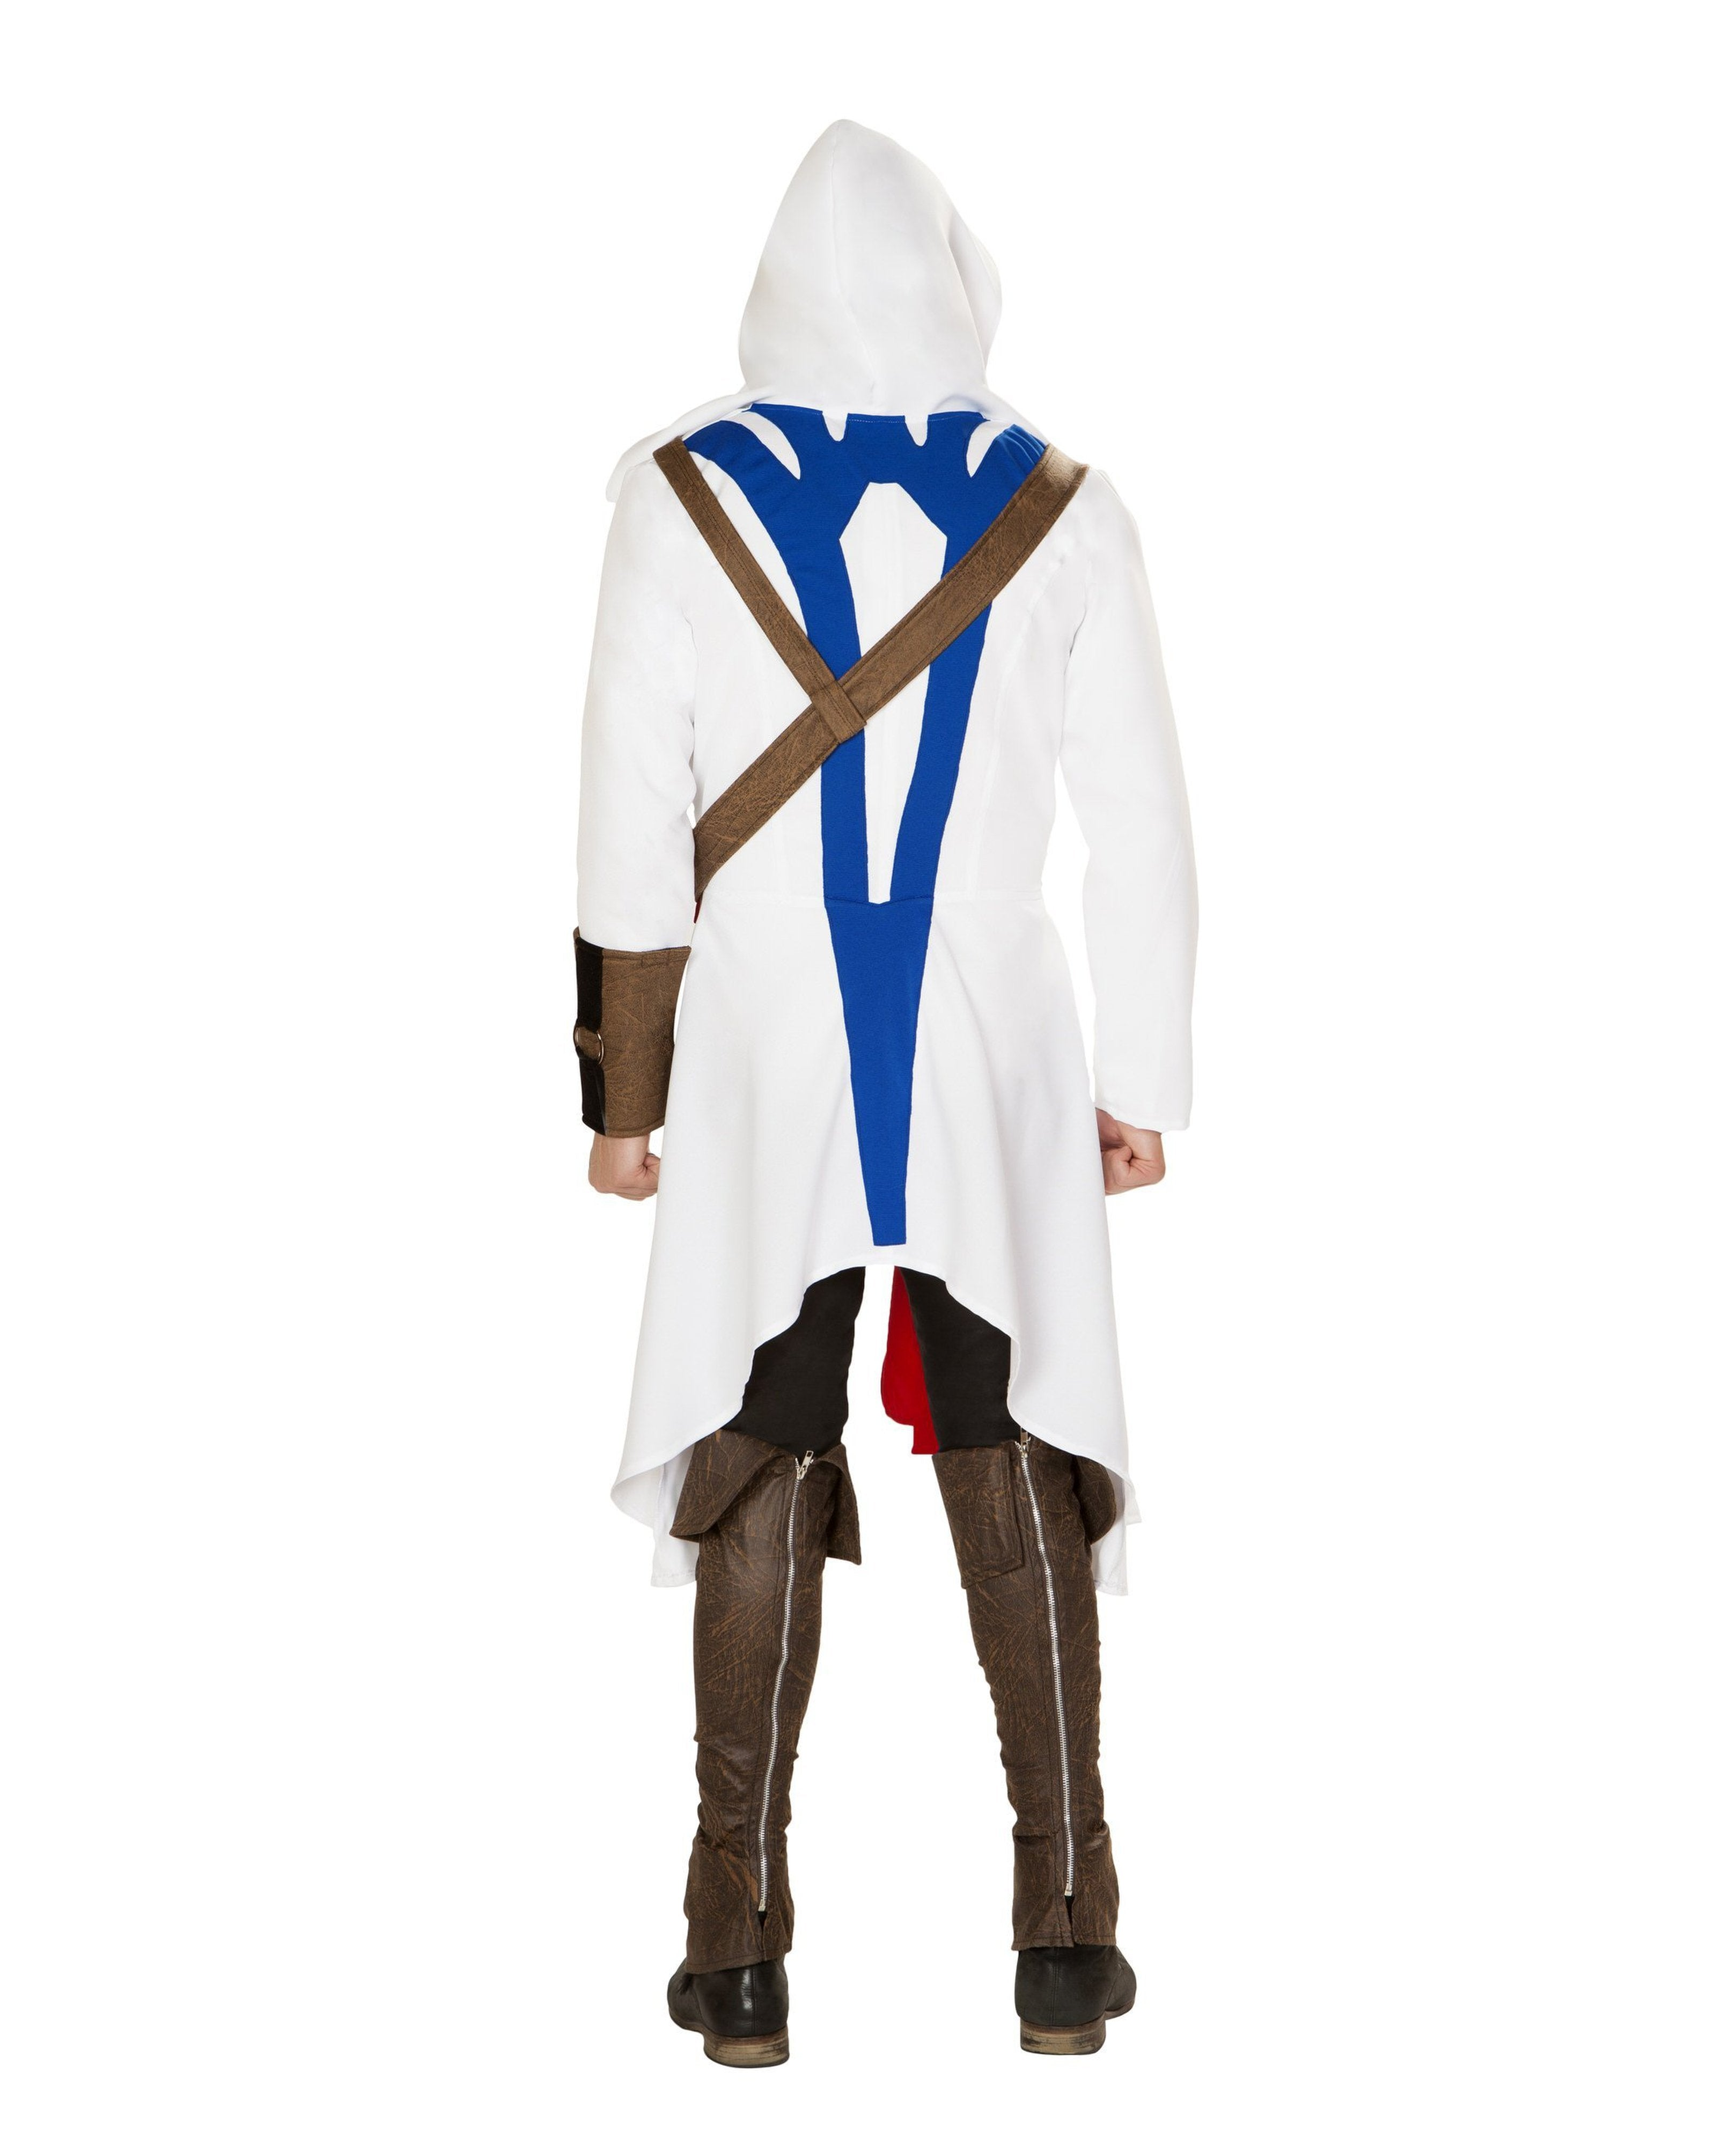 The Assassins Warrior costumes Size SmallColor White/Blue/RedNakees